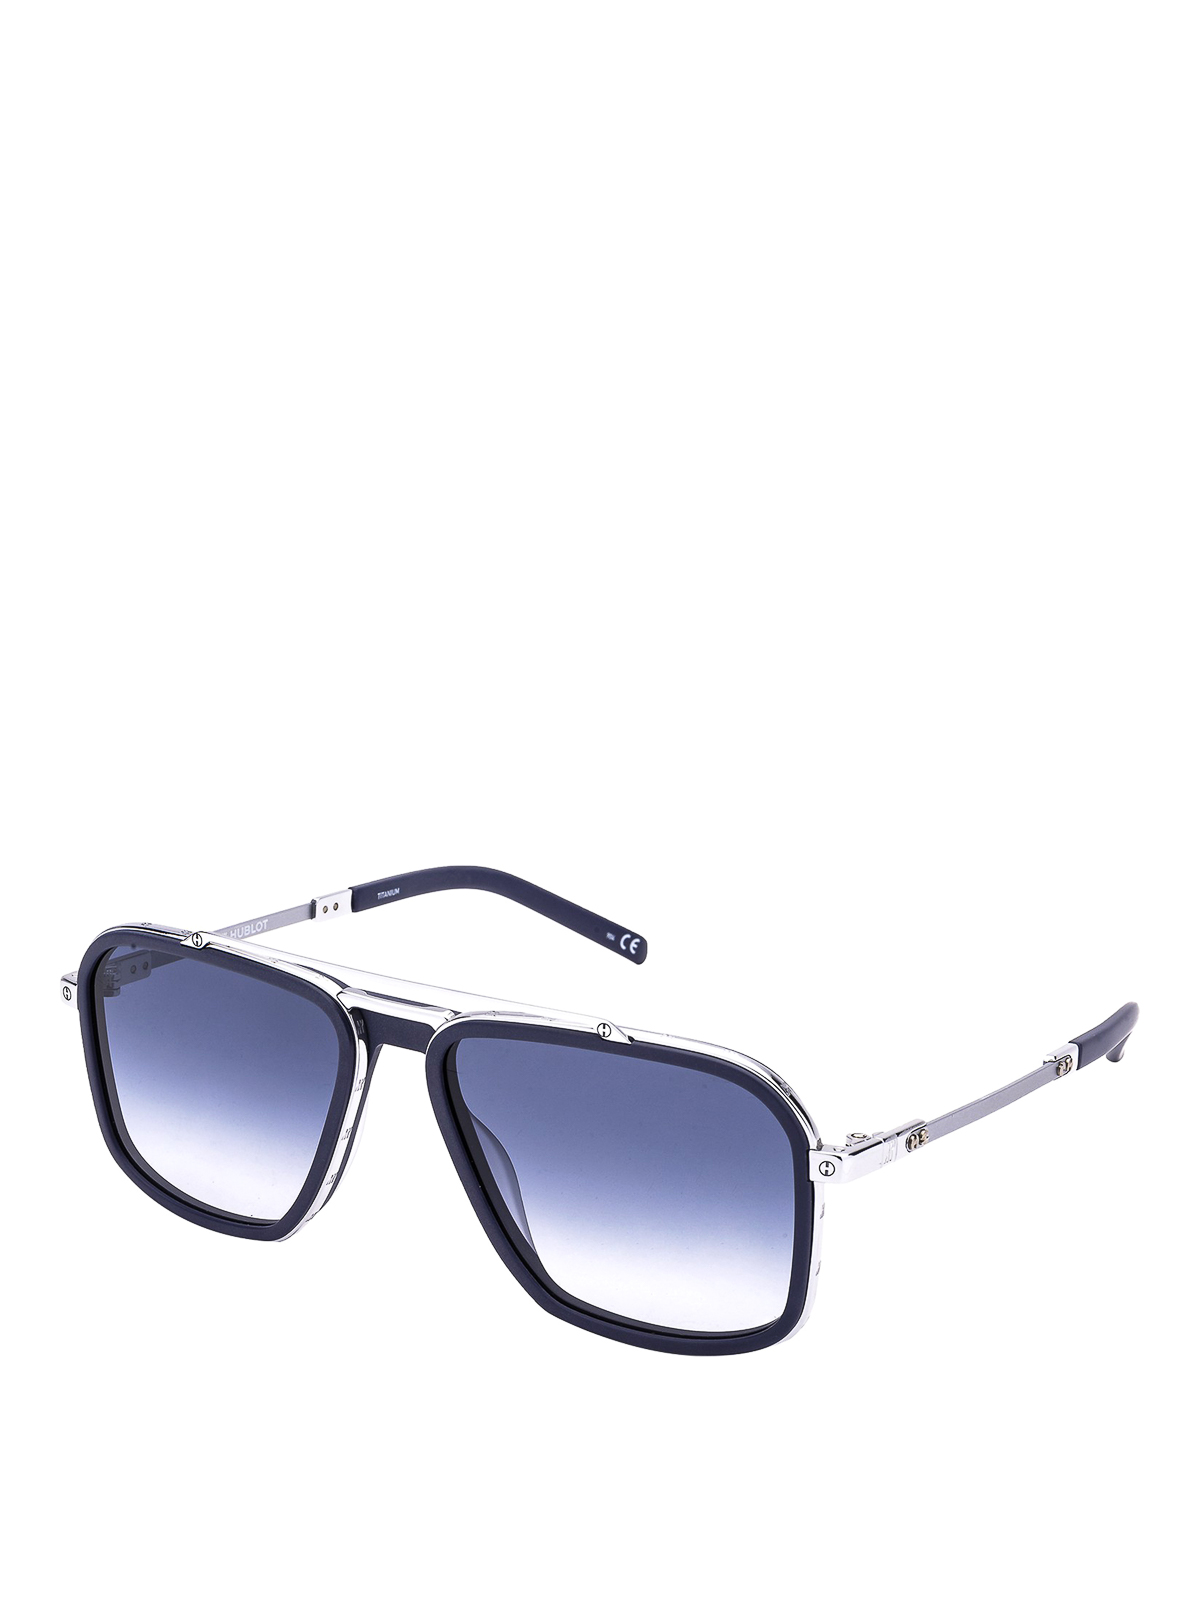 Hublot Blue Titanium Sunglasses